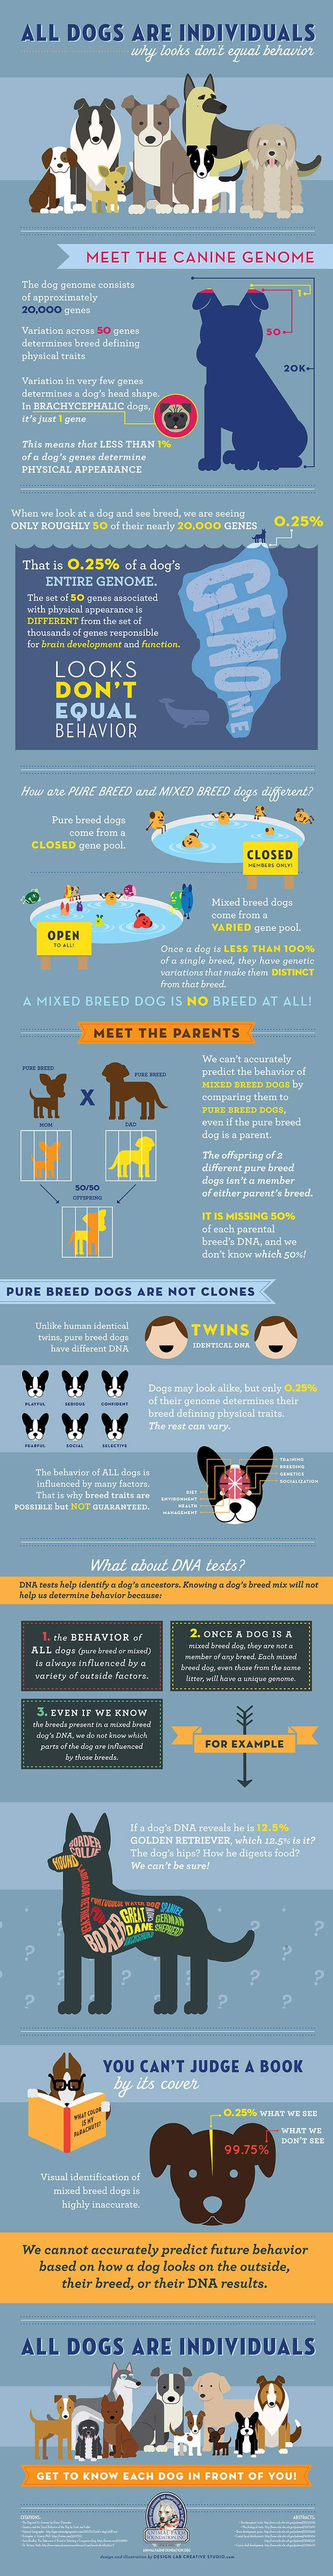 Removing Breed Labels: Easier Than You Think | Animal Farm Foundation